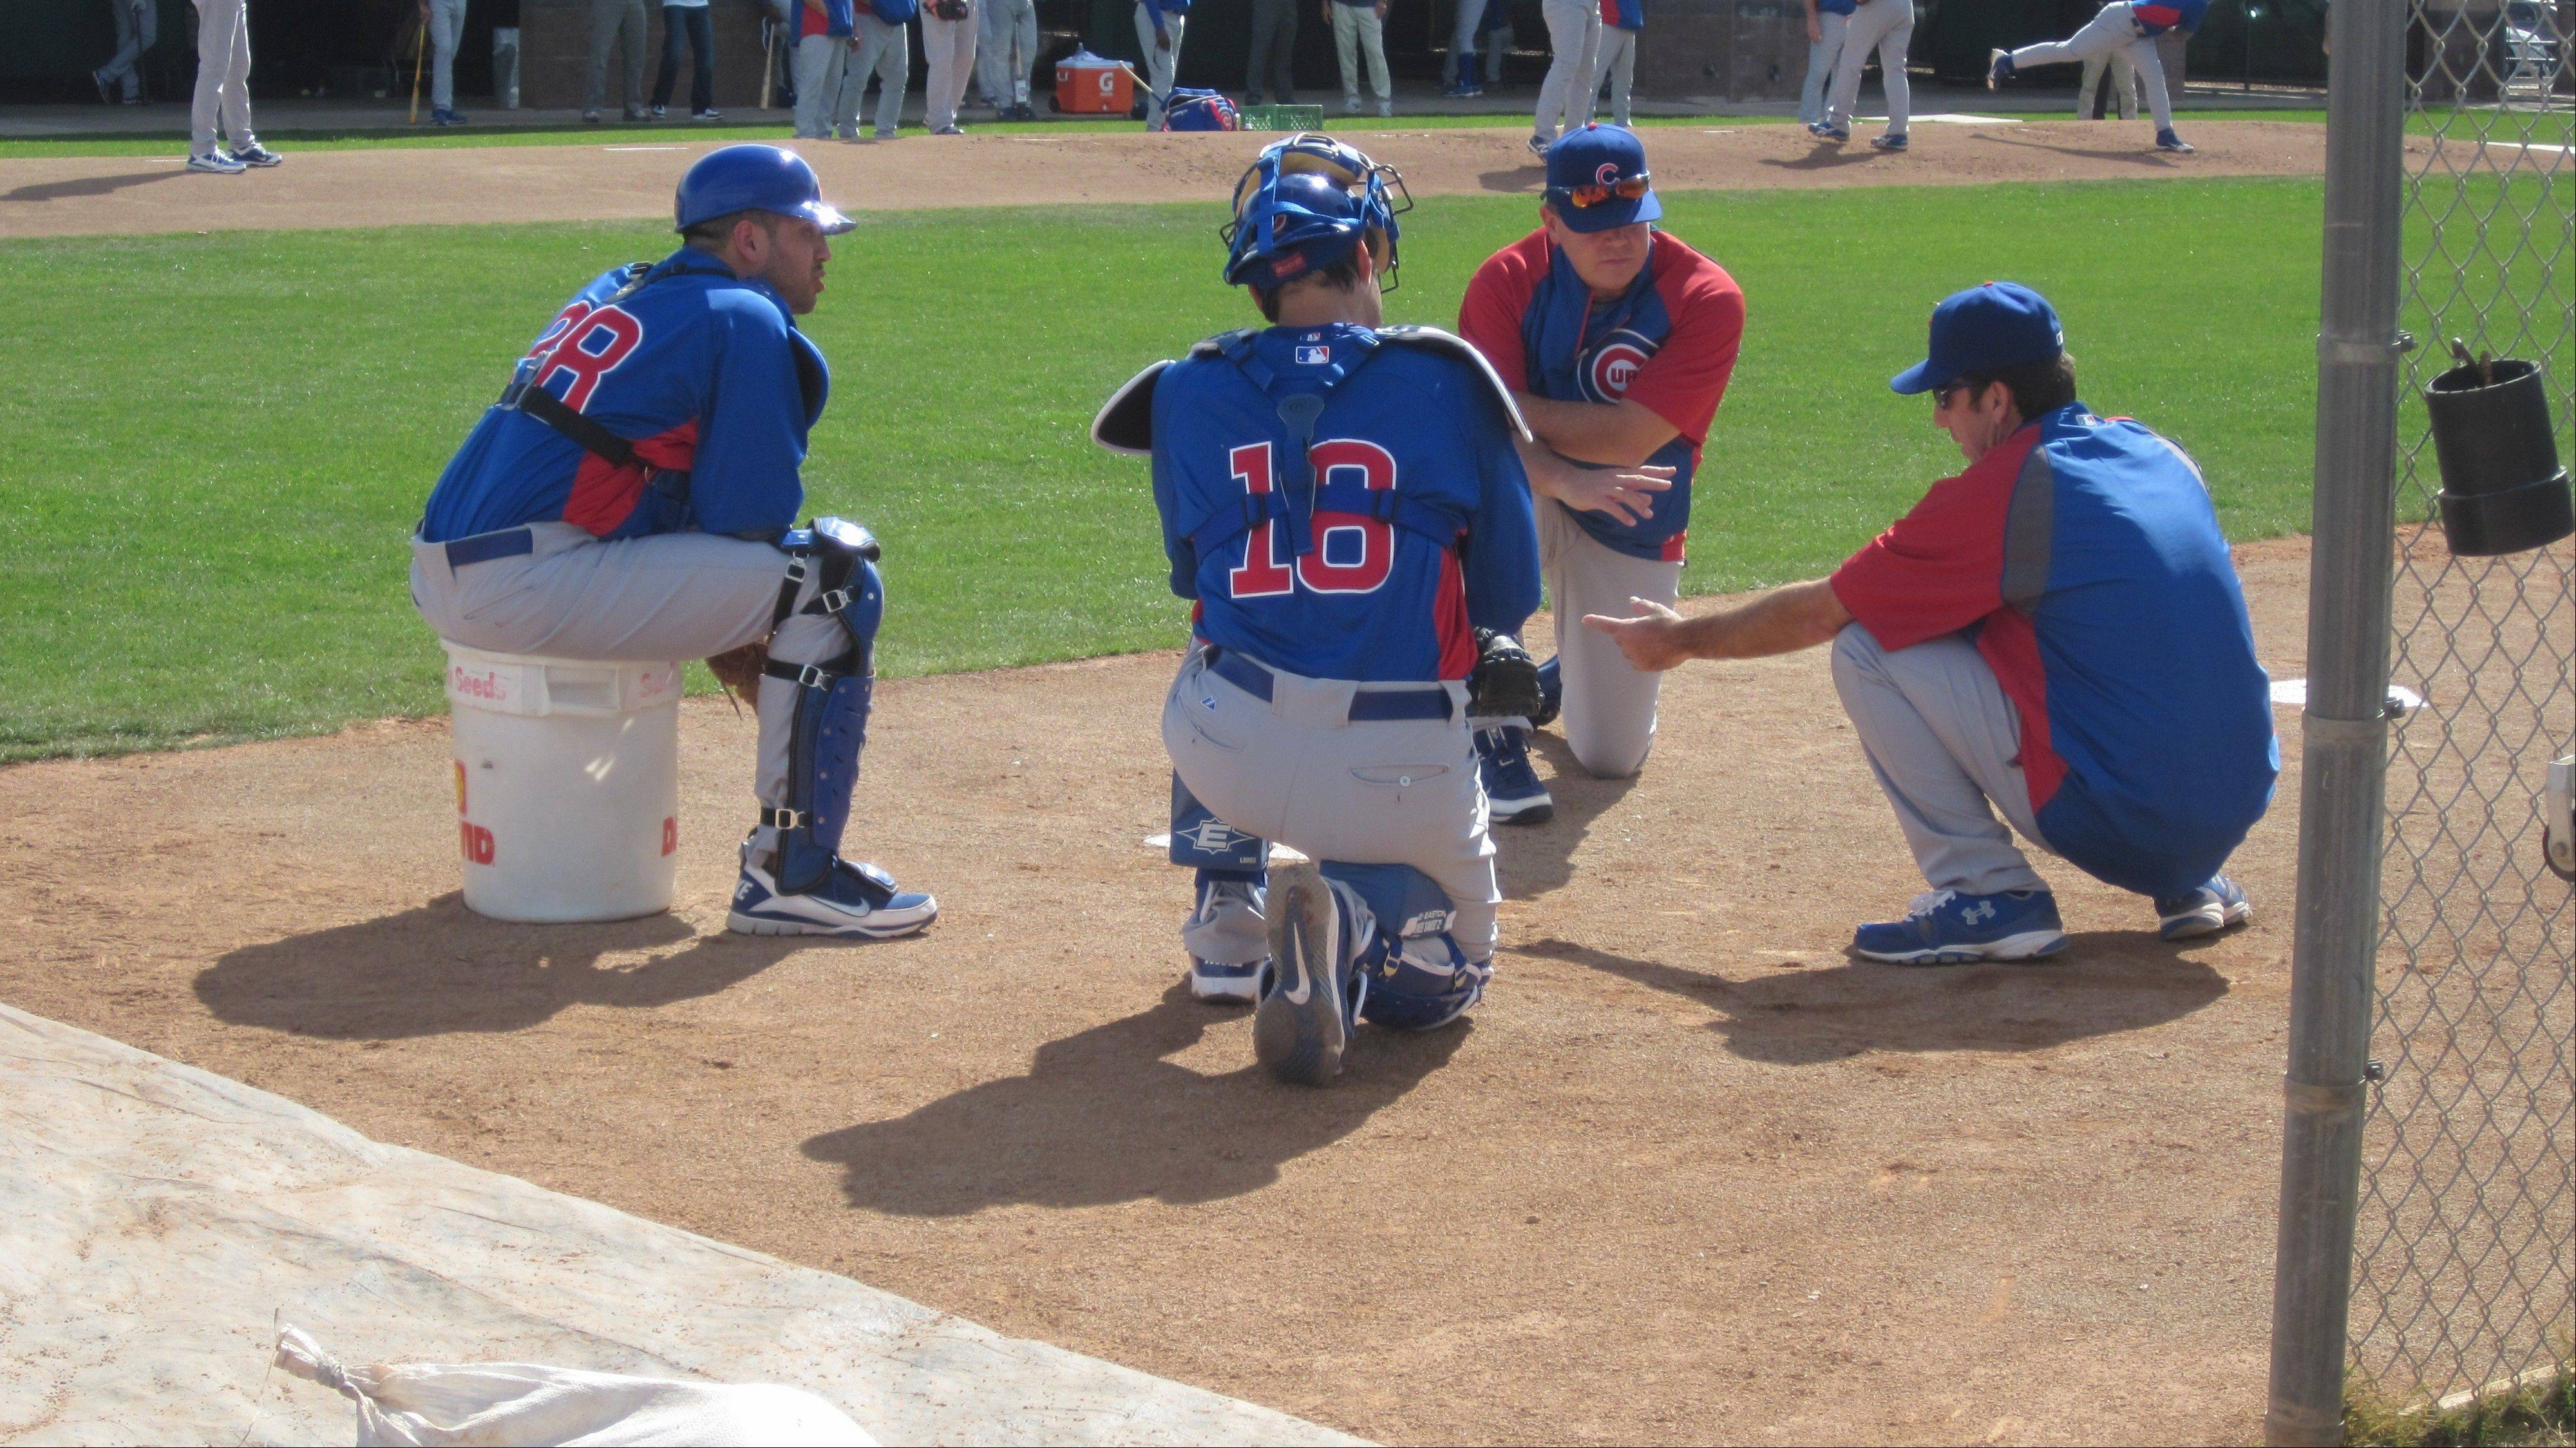 After going through several catching drills, Cubs players and coaches talk about what they accomplished and what's needed. From left to right are Jason Jaramillo (38), Geovany Soto (18), instructor Marty Pevey and coach Mike Borzello.